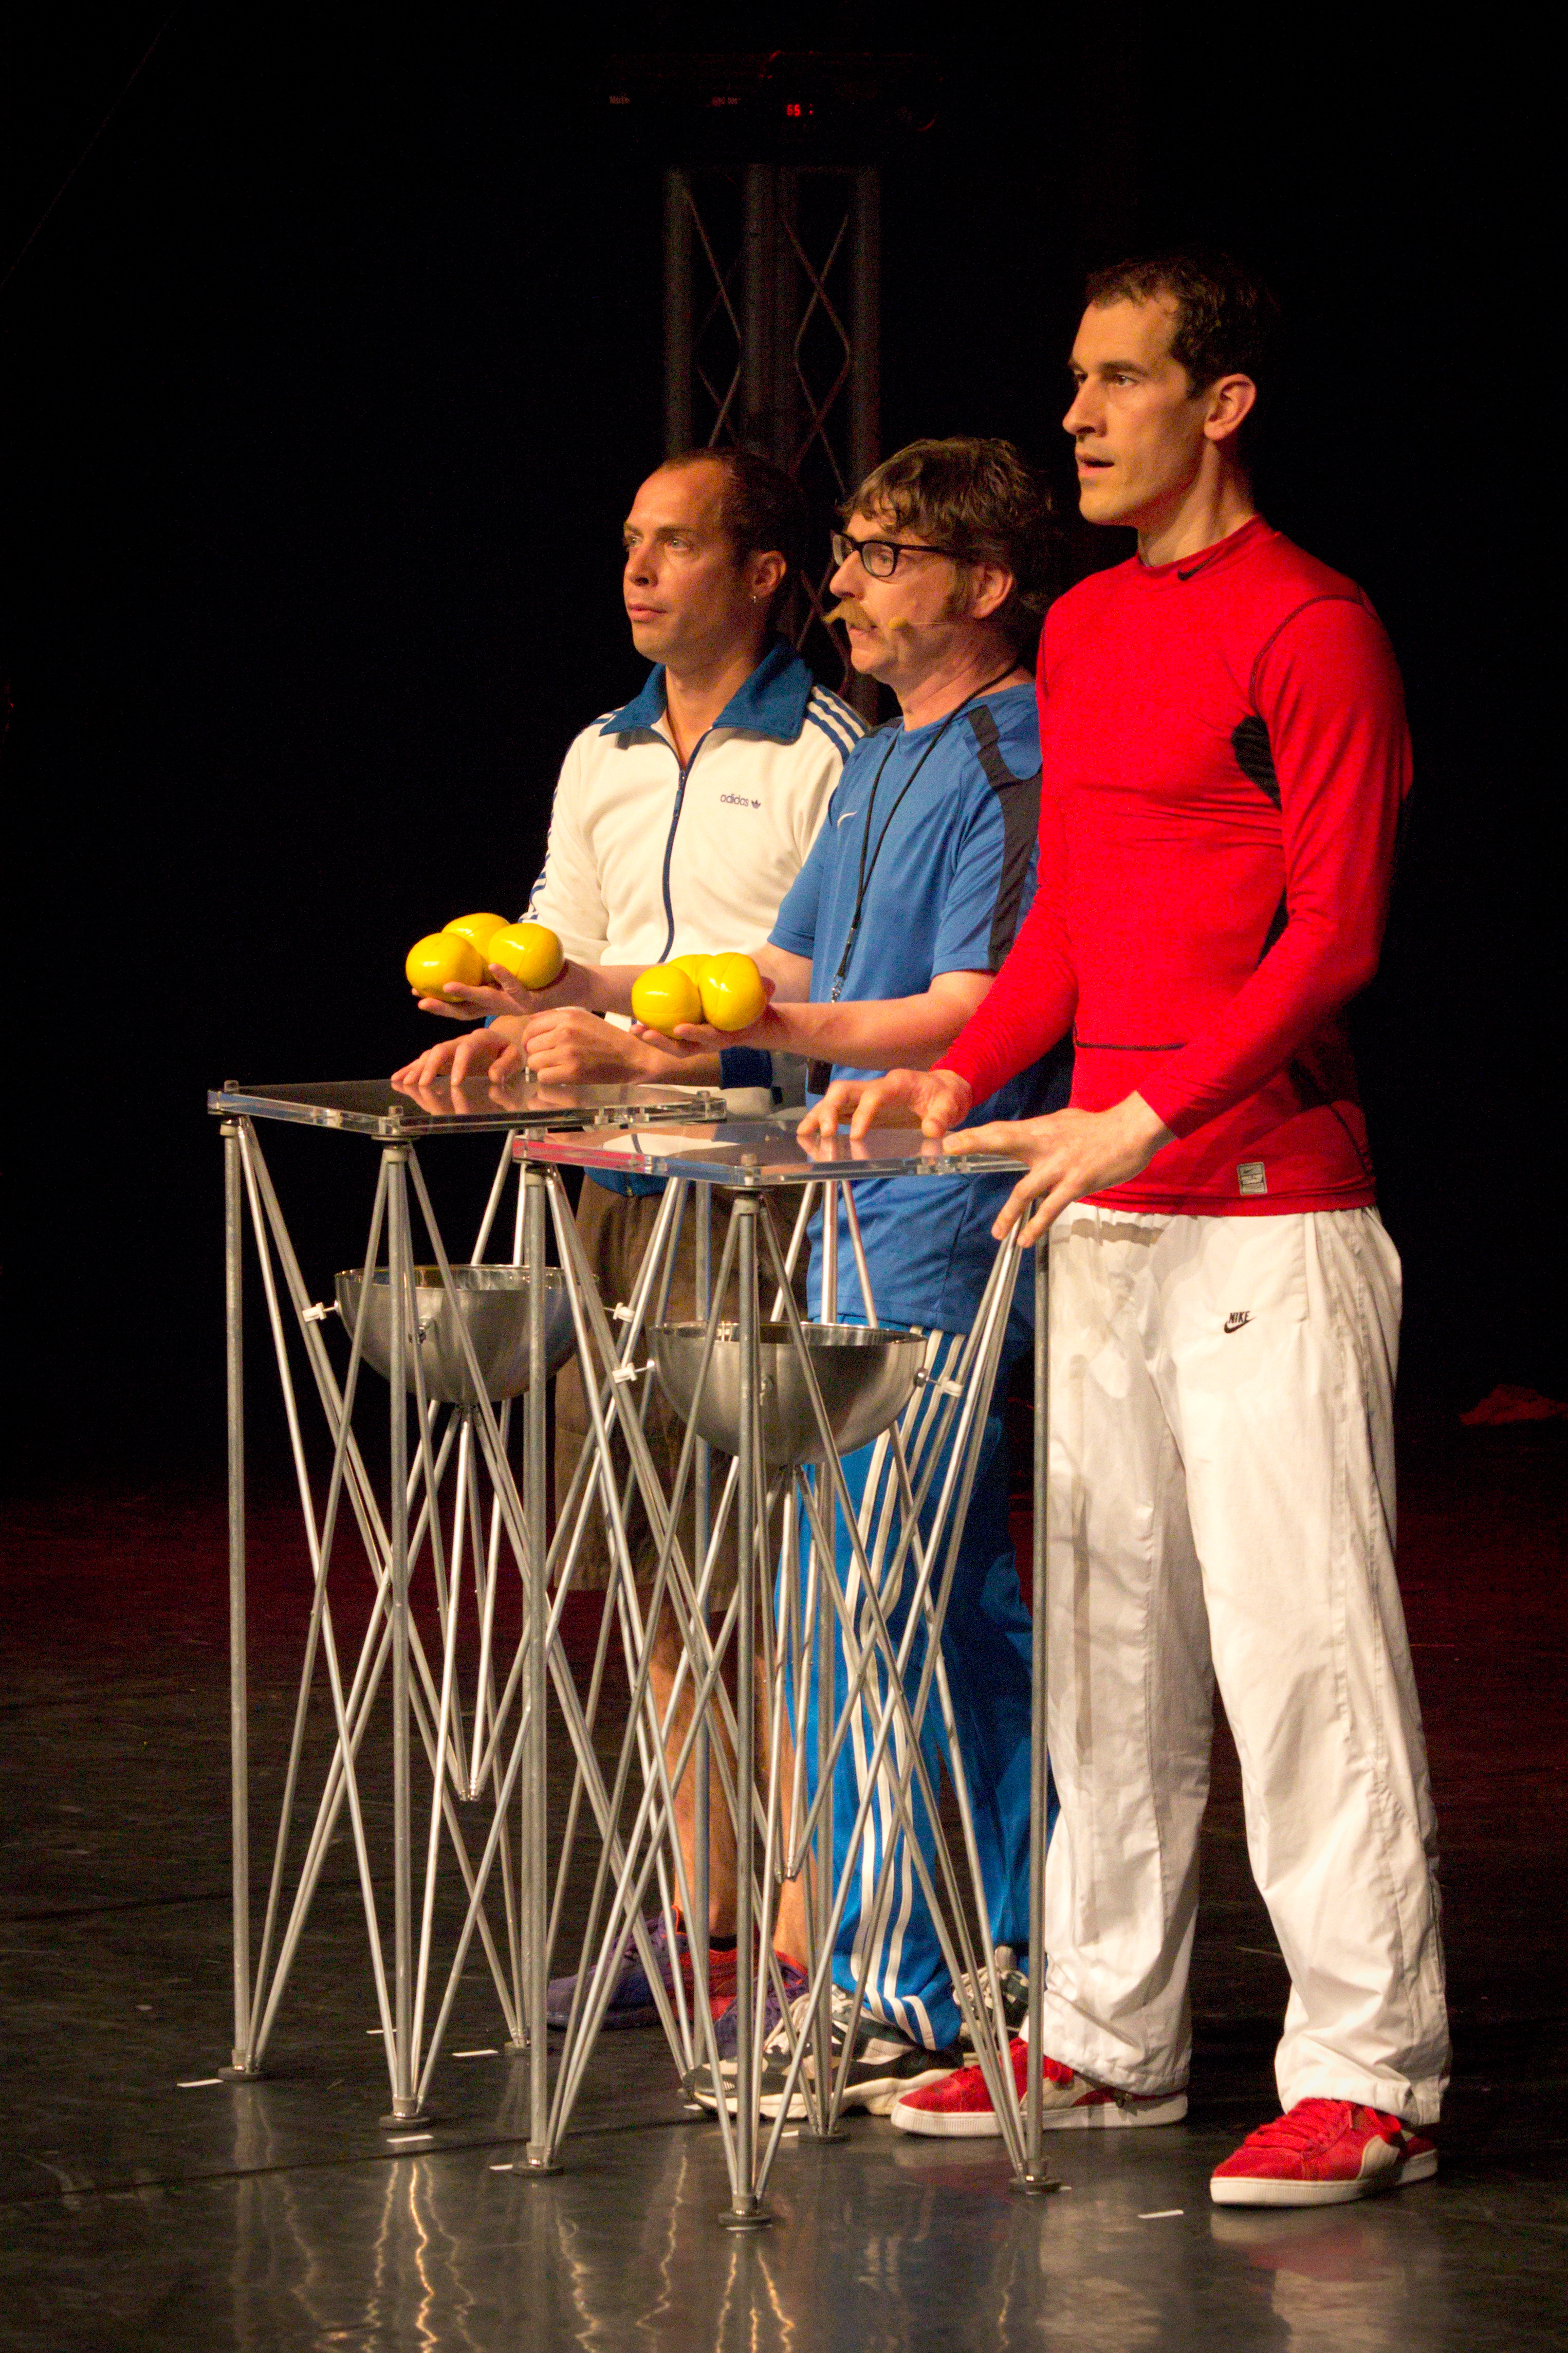 Berlin Juggling Convention 2013 Gala Show: Florian, Jochen and Günter.